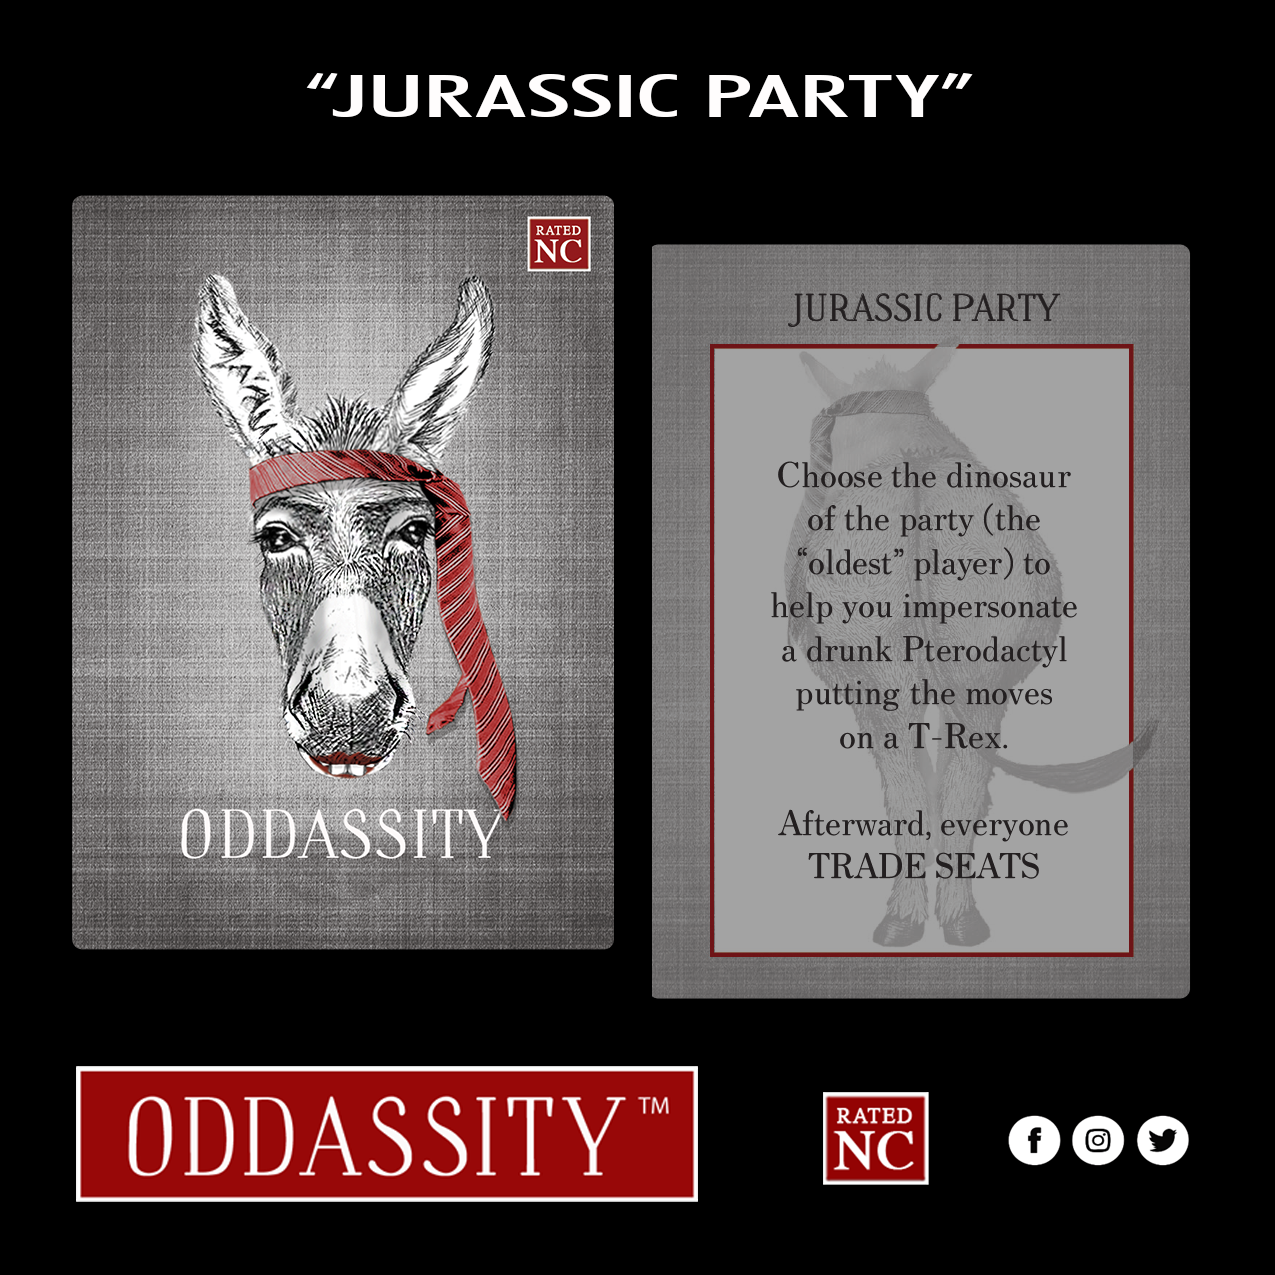 """JURASSIC PARTY   Choose the dinosaur of the party (the """"oldest"""" player) to help you impersonate a drunk Pterodactyl putting the moves on a T-Rex."""